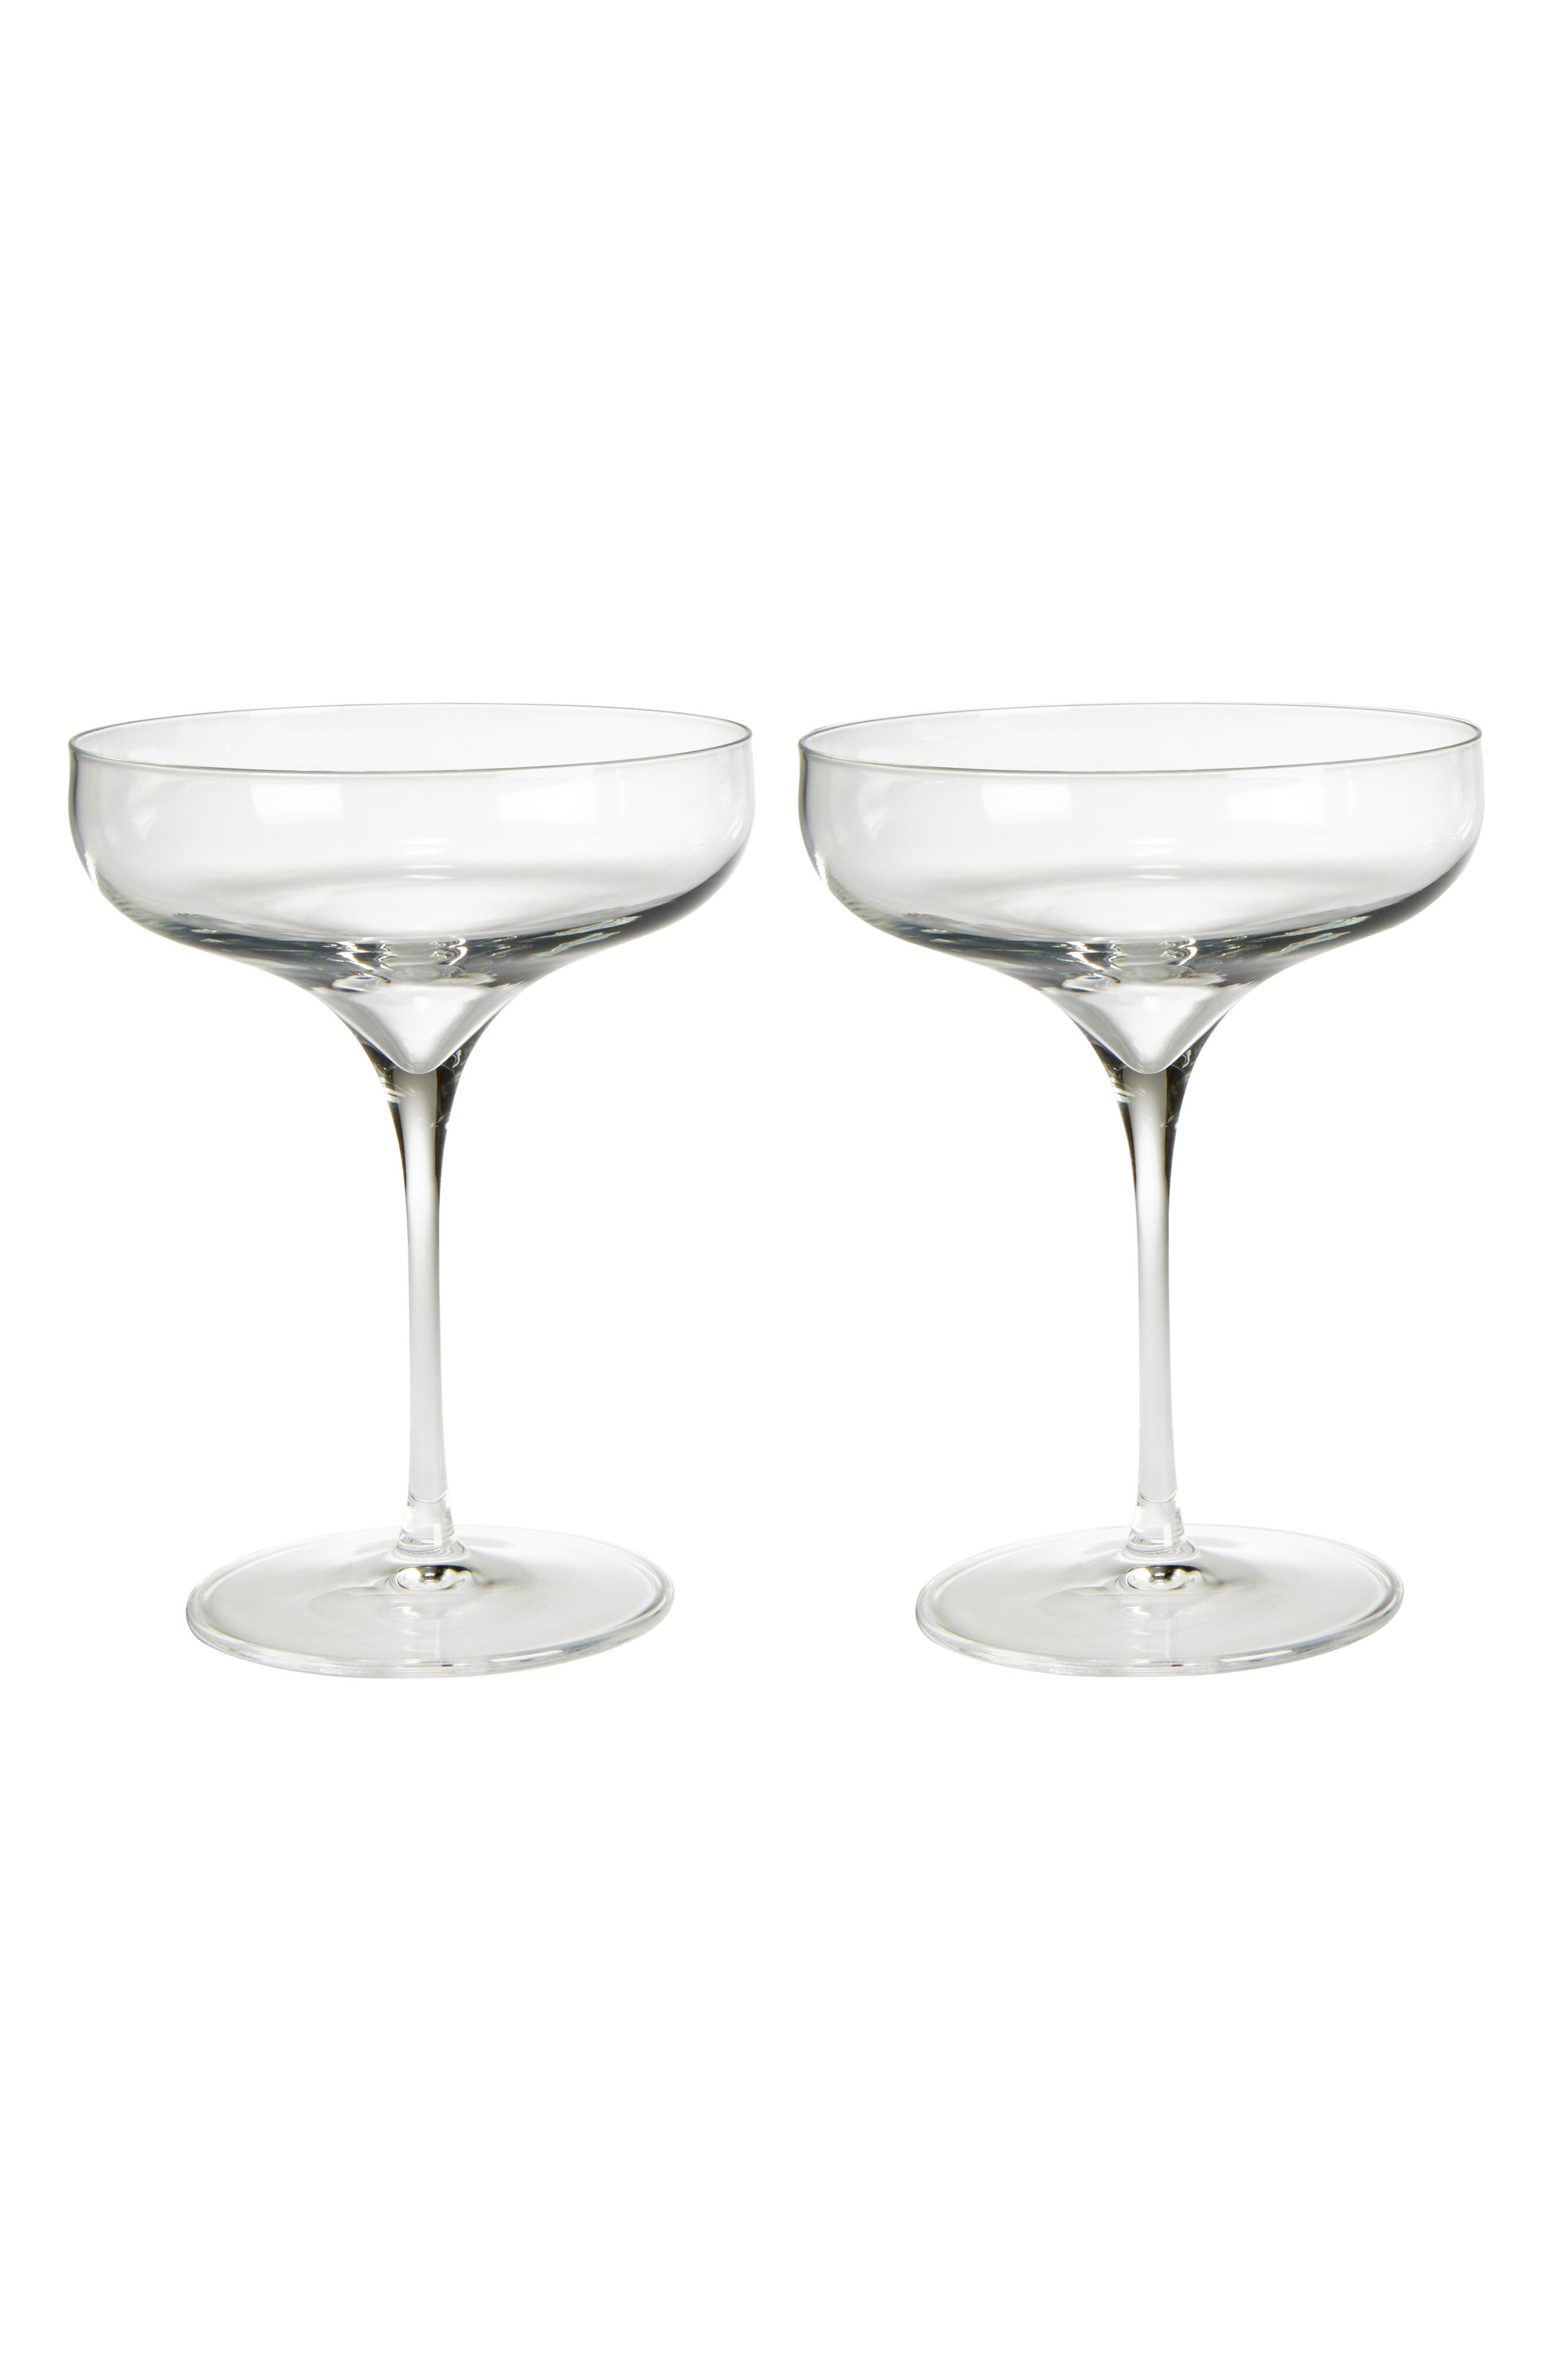 Main Image - Luigi Bormiolo Vinea Moscato/Spumante Set of 2 Coupe Glasses